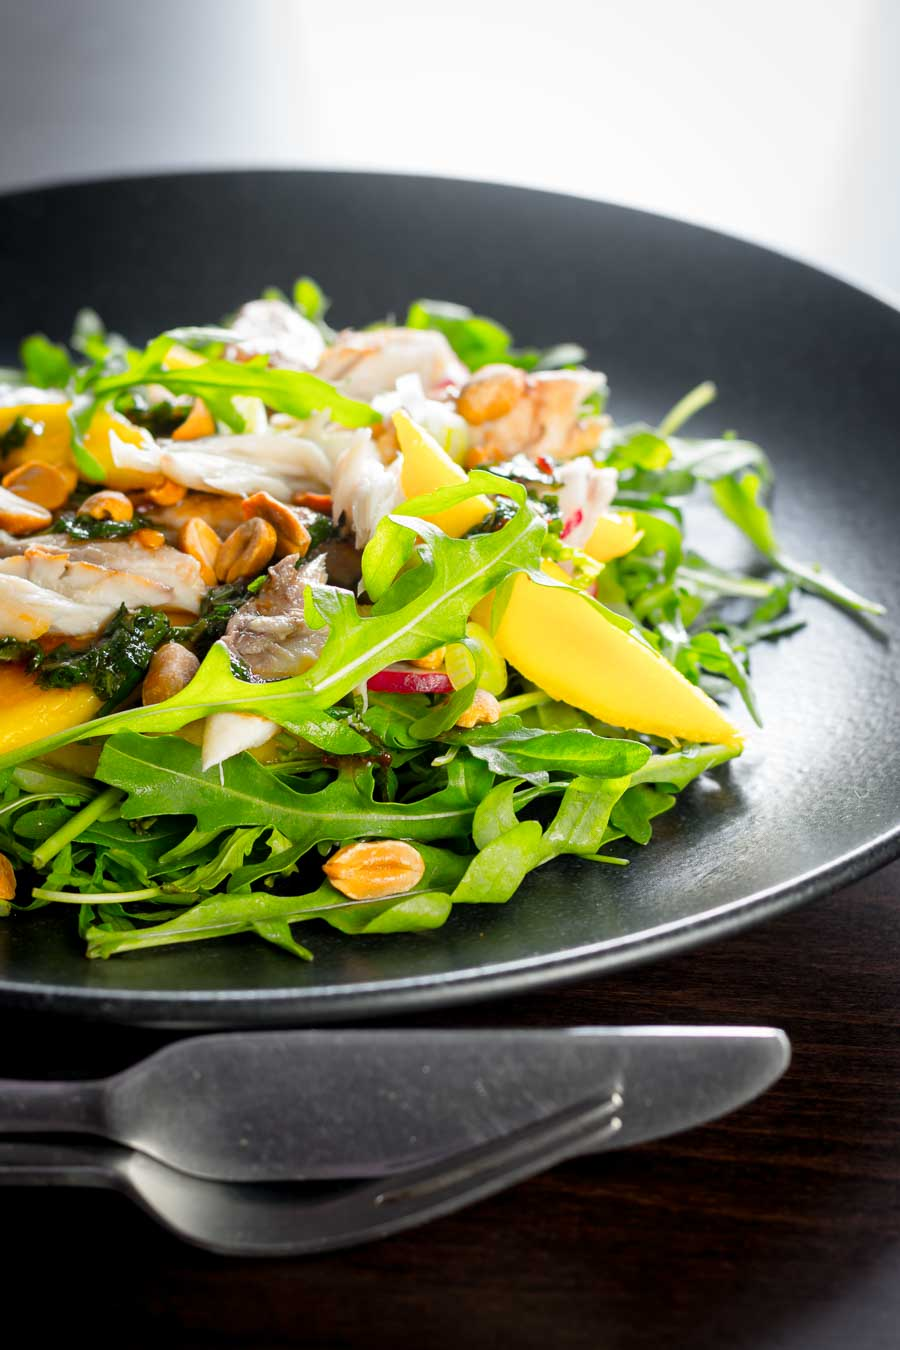 This smoked mackerel salad uses some flavourings from the east combined with mango to cut through the richness and saltiness of the smoked mackerel.